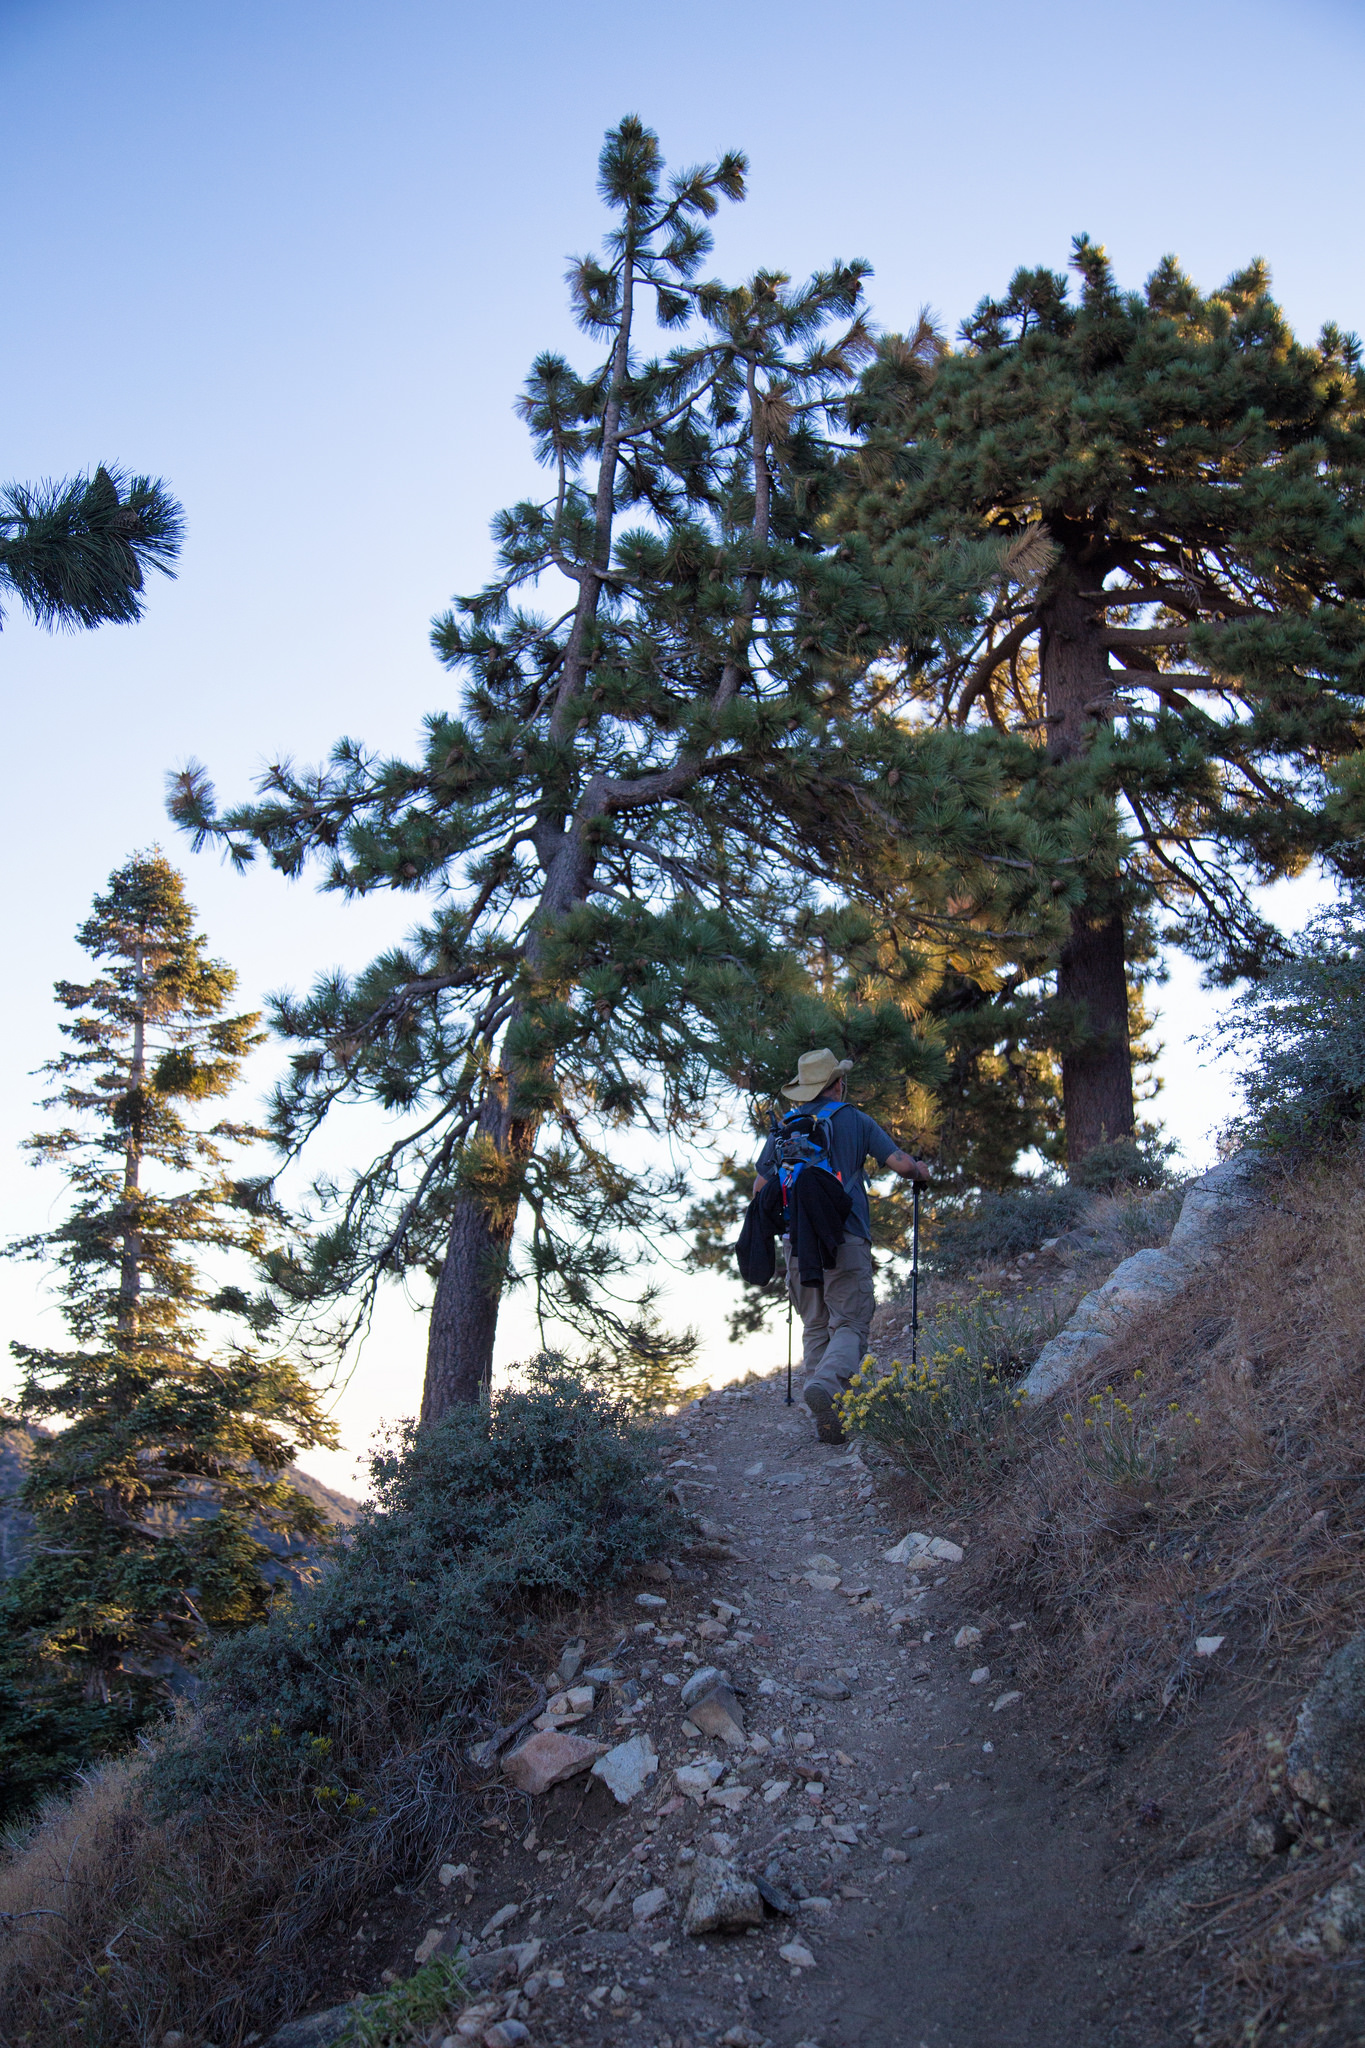 The trail starts up some steep switchbacks on an exposed climb..